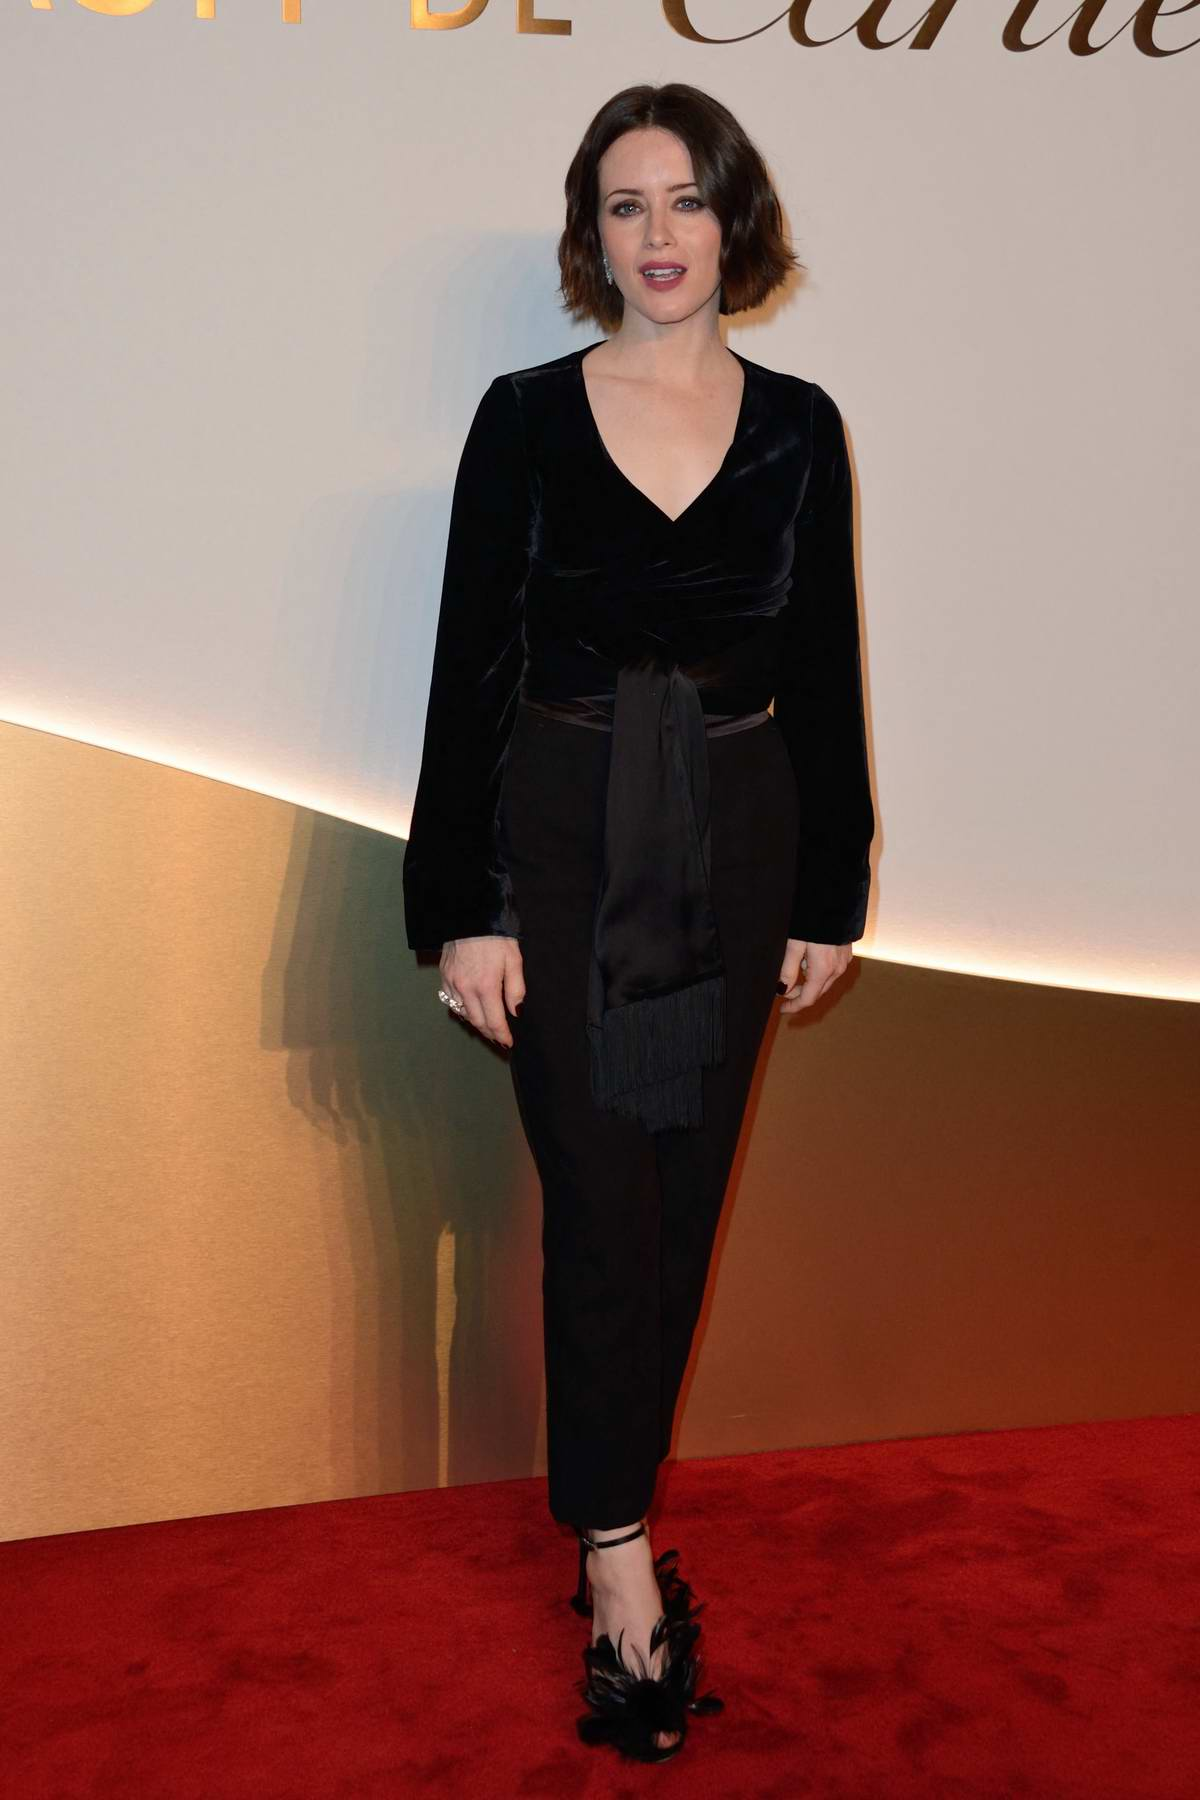 Claire Foy attends Clash De Cartier Photocall at La Conciergerie in Paris, France